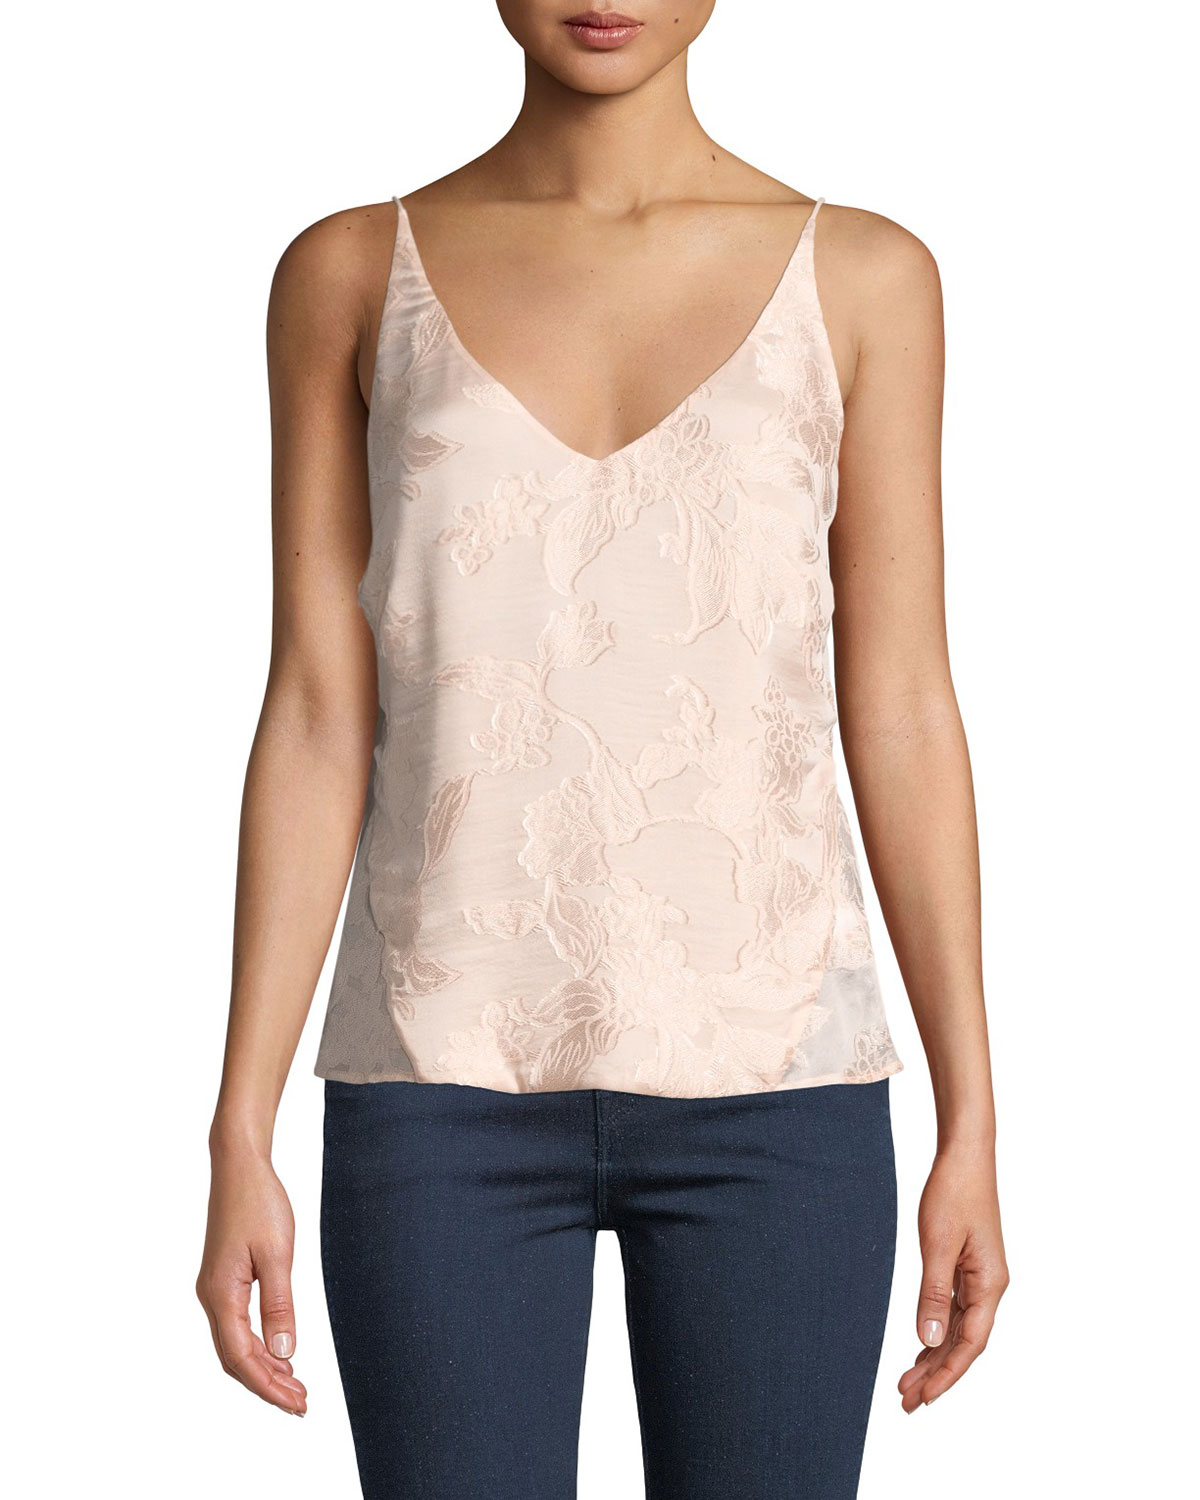 Lucy Floral Jacquard V-Neck Camisole in Lulled